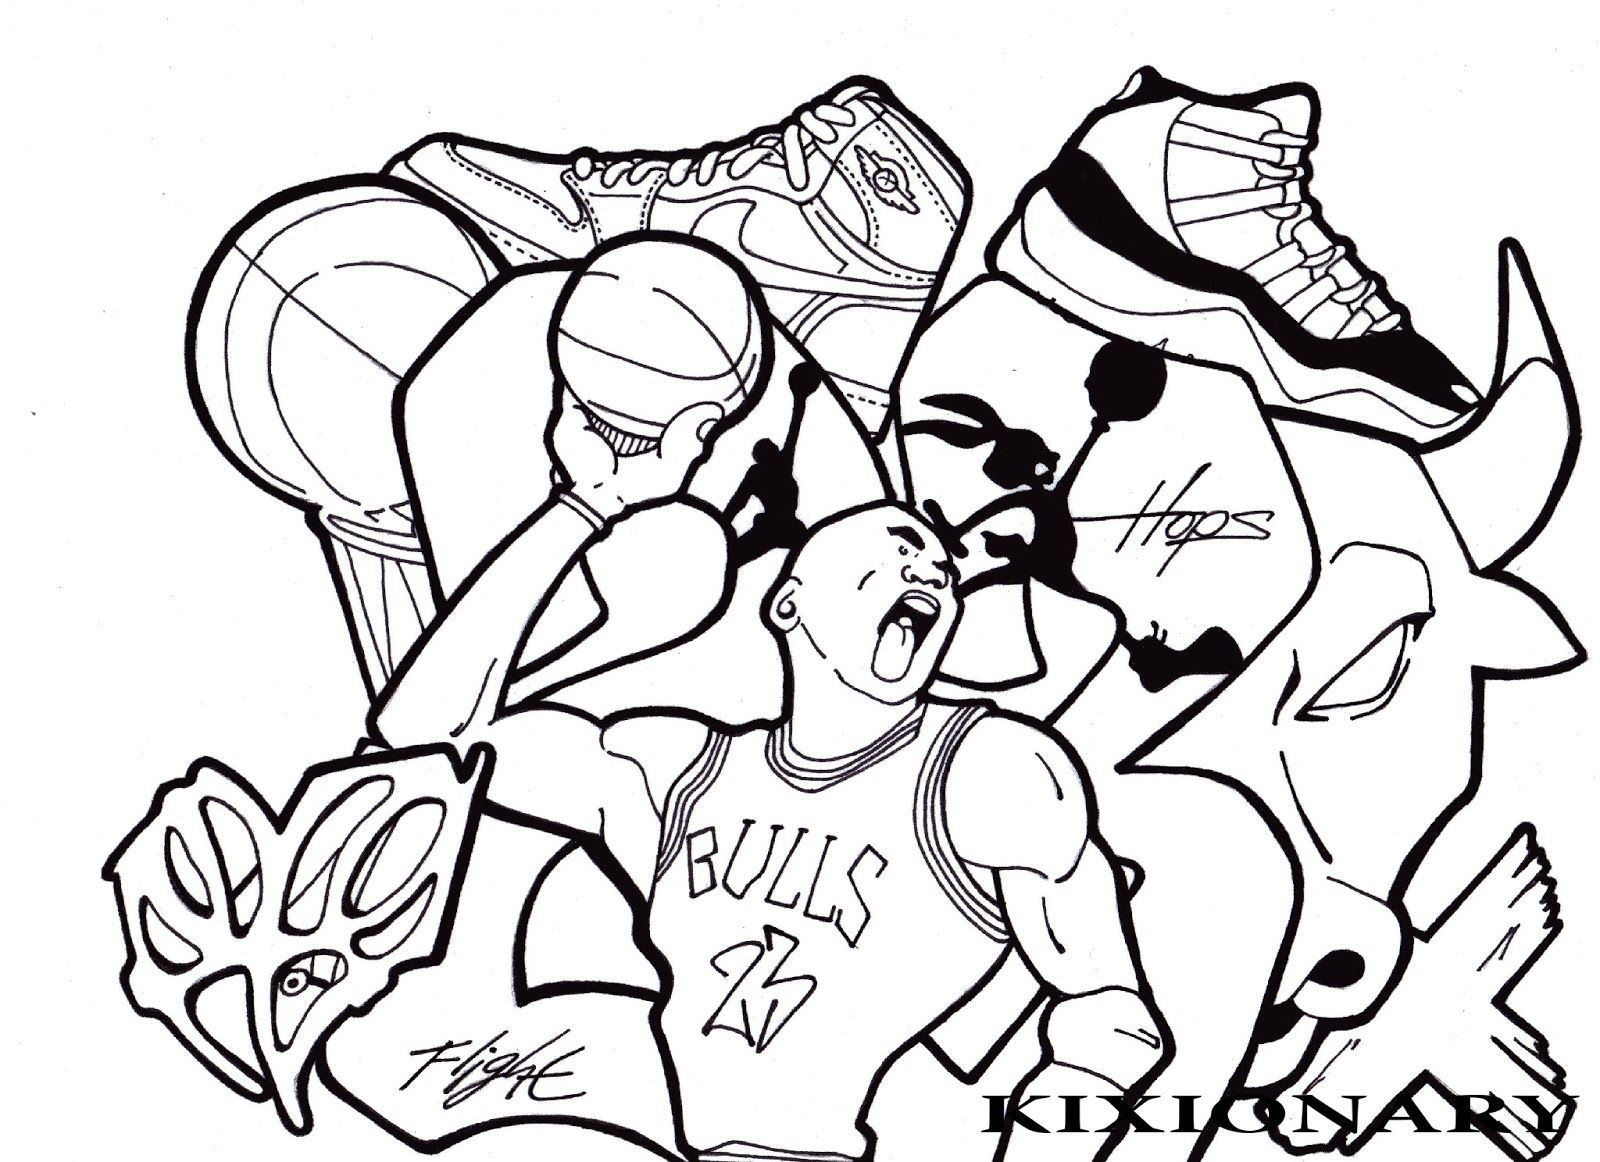 jordan coloring pages for kids - photo#20